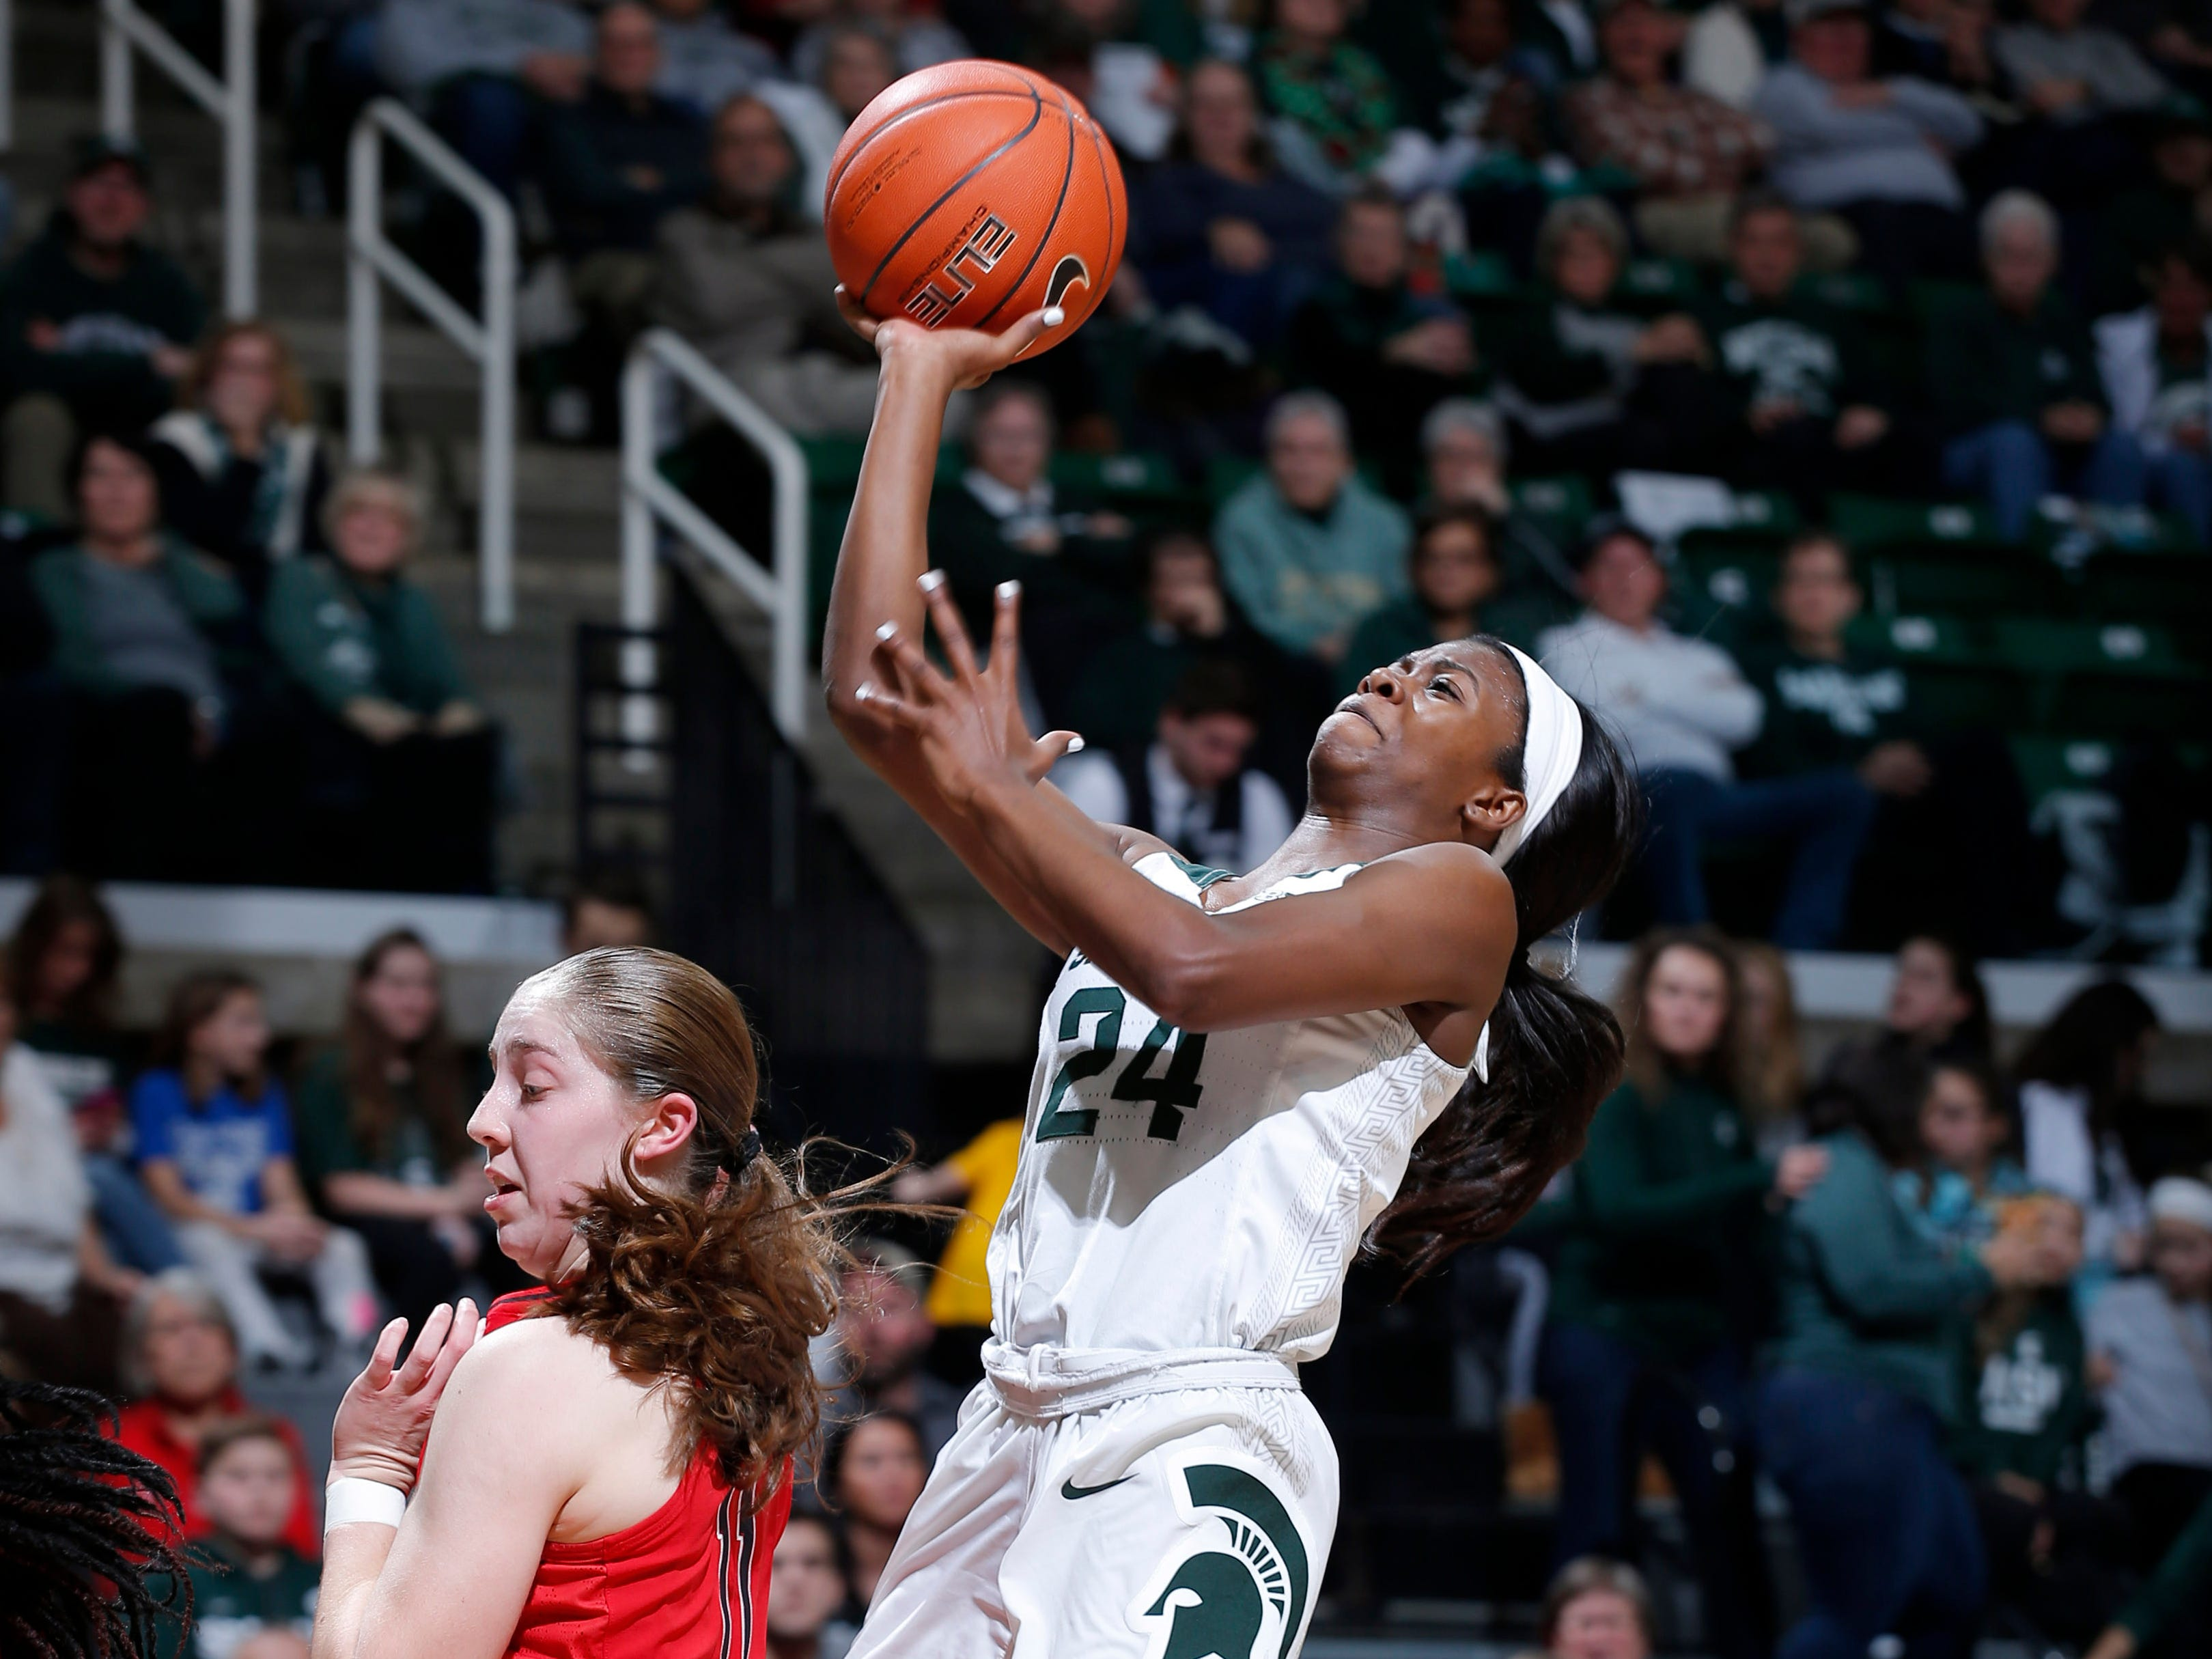 Michigan State's Nia Clouden, right, puts up s driving shot against Maryland's Taylor Mikesell, Thursday, Jan. 17, 2019, in East Lansing, Mich.